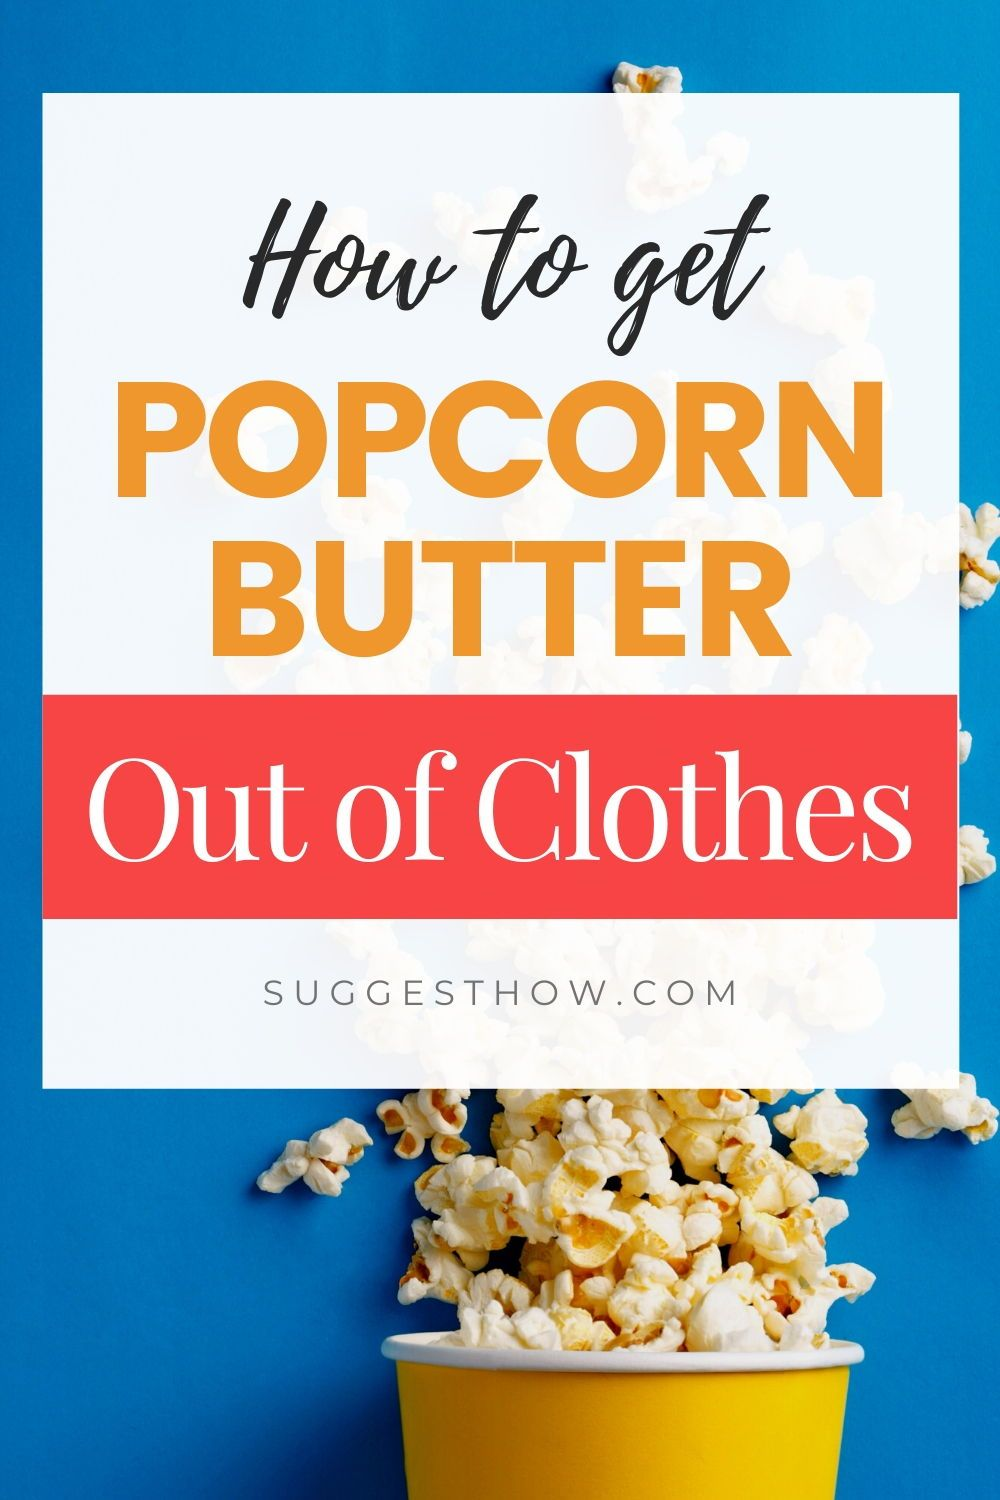 How To Get Popcorn Butter Stains Out Of Clothes